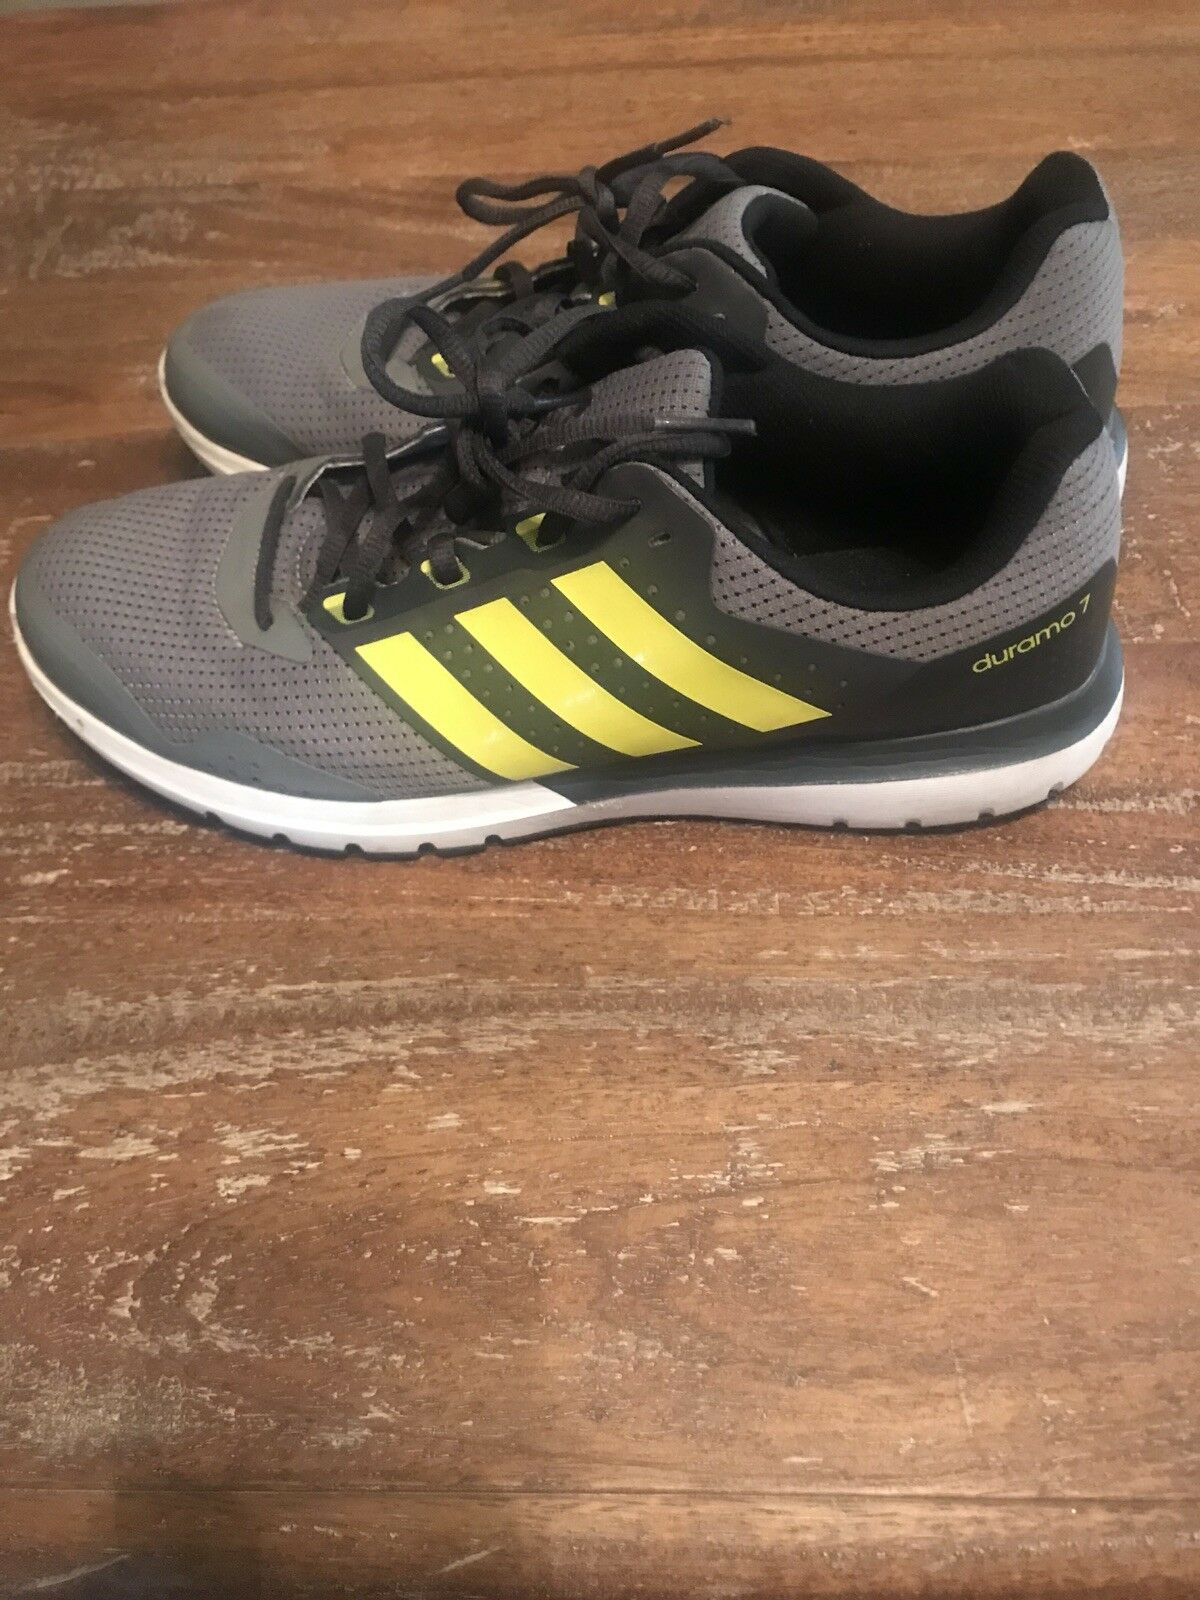 mens adidas running shoes size 11 Wild casual shoes